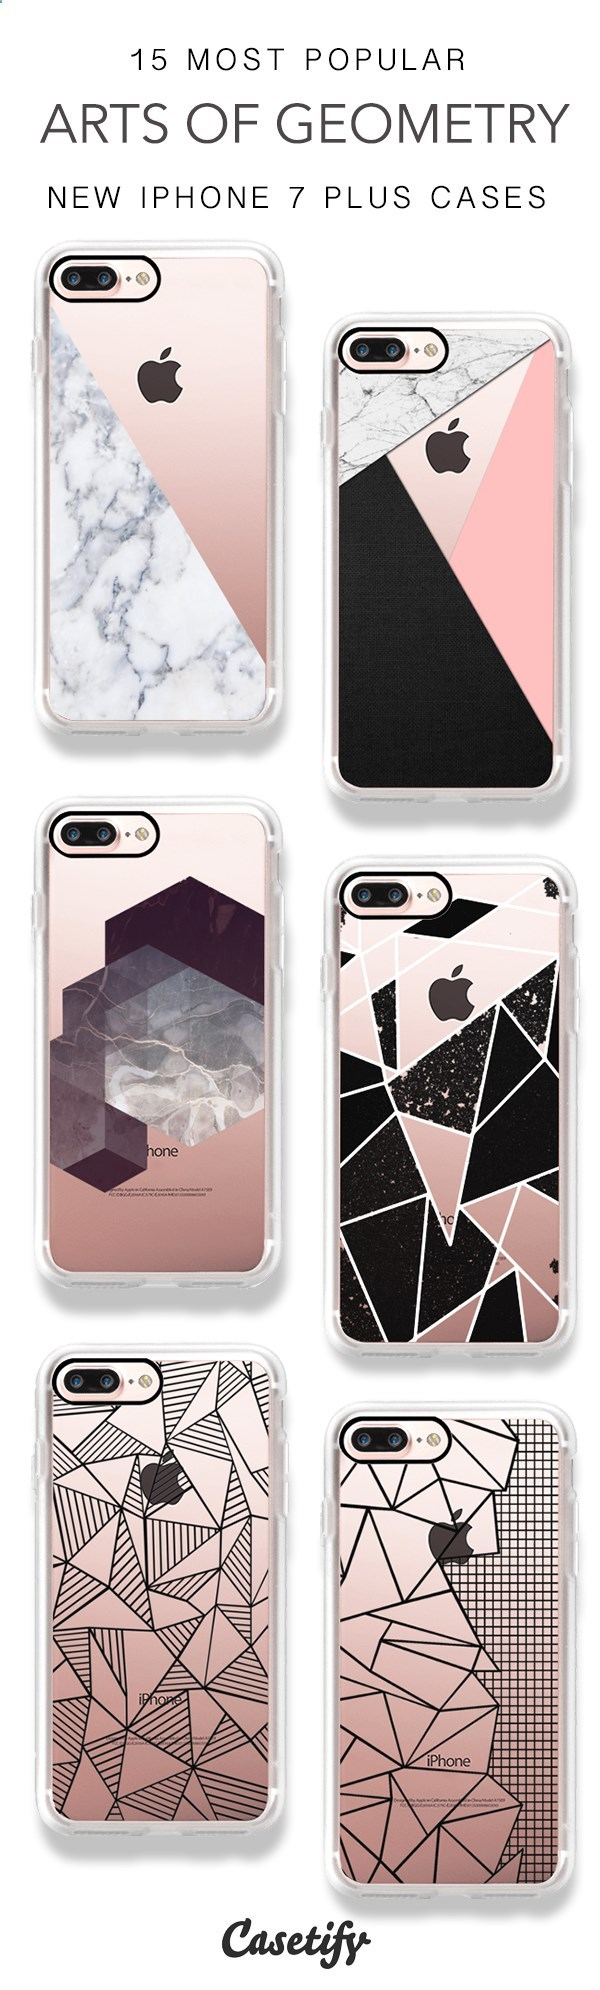 online retailer 75b0d 41ad6 Phone Cases - Explore the Arts of Geometry! 15 Most Popular Marble ...